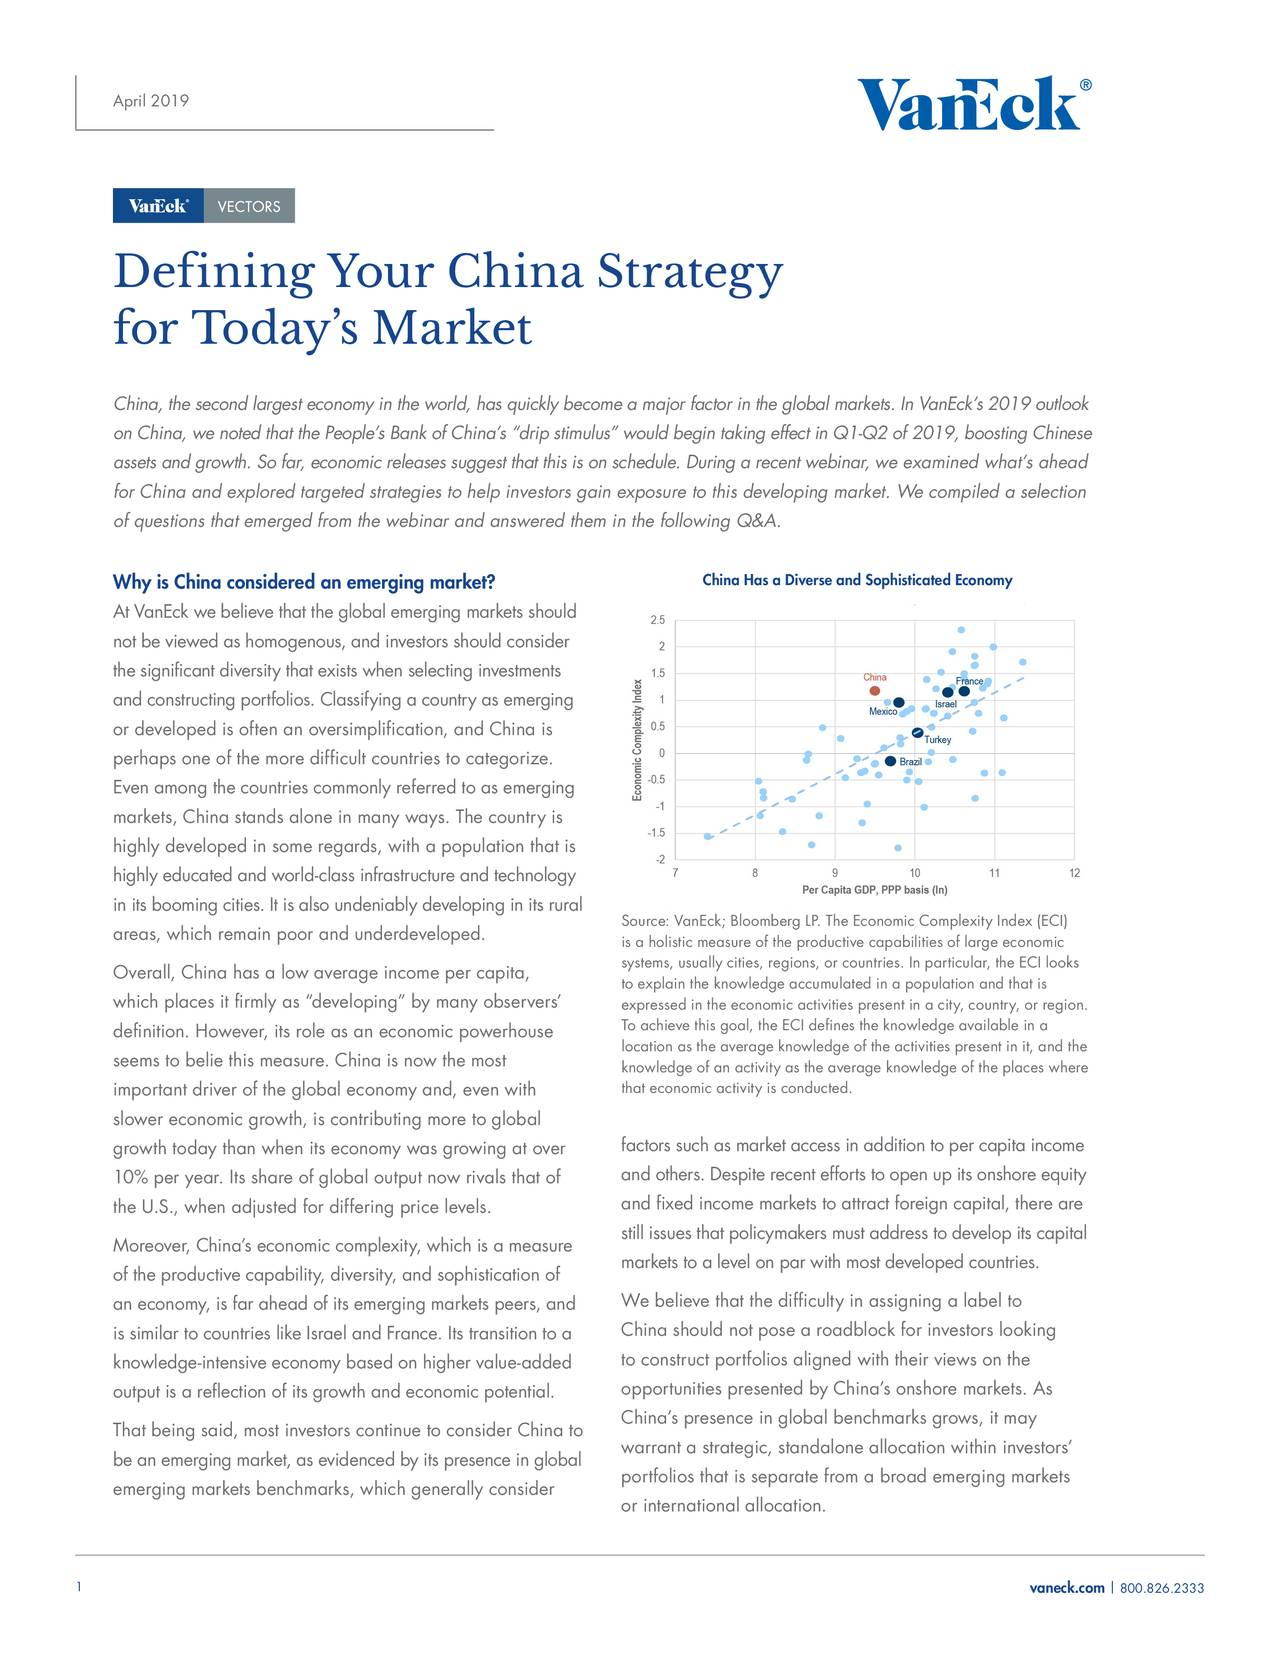 """Defining Your China Strategy for Today's Market China, the second largest economy in the world, has quickly become a majo ▯ r factor in the global markets. In VanEck's 2019 outlook on China, we noted that the People's Bank of China's """"drip stimulus"""" would begin taking effect in Q1-Q2 of 2019, boost▯ ing Chinese assets and growth. So far, economic releases suggest that this is on schedule. During a recent w▯ inar, we examined what's ahead for China and explored targeted strategies to help investors gain exposu▯re to this developing market. We compiled a selection of questions that emerged from the webinar and answered them in the foll▯owing Q&A. Why is China considered an emerging market? China Has a Diverse and Sophisticated Economy At VanEck we believe that the global emerging markets should not be viewed as homogenous, and investors should consider the significant diversity that exists when selecting investments and constructing portfolios. Classifying a country as emerging or developed is often an oversimplification, and China is perhaps one of the more difficult countries to categorize. Even among the countries commonly referred to as emerging markets, China stands alone in many ways. The country is highly developed in some regards, with a population that is highly educated and world-class infrastructure and technology in its booming cities. It is also undeniably developing in its rural Source: VanEck; Bloomberg LP. The Economic Complexity Index (ECI) areas, which remain poor and underdeveloped. is a holistic measure of the productive capabilities of large economic Overall, China has a low average income per capita, systems, usually cities, regions, or countries. In particular, the ECI looks to explain the knowledge accumulated in a population and that is which places it firmly as """"developing"""" by many observers' expressed in the economic activities present in a city, country, or region. To achieve this goal, the ECI defines the knowledge available in a definitio"""